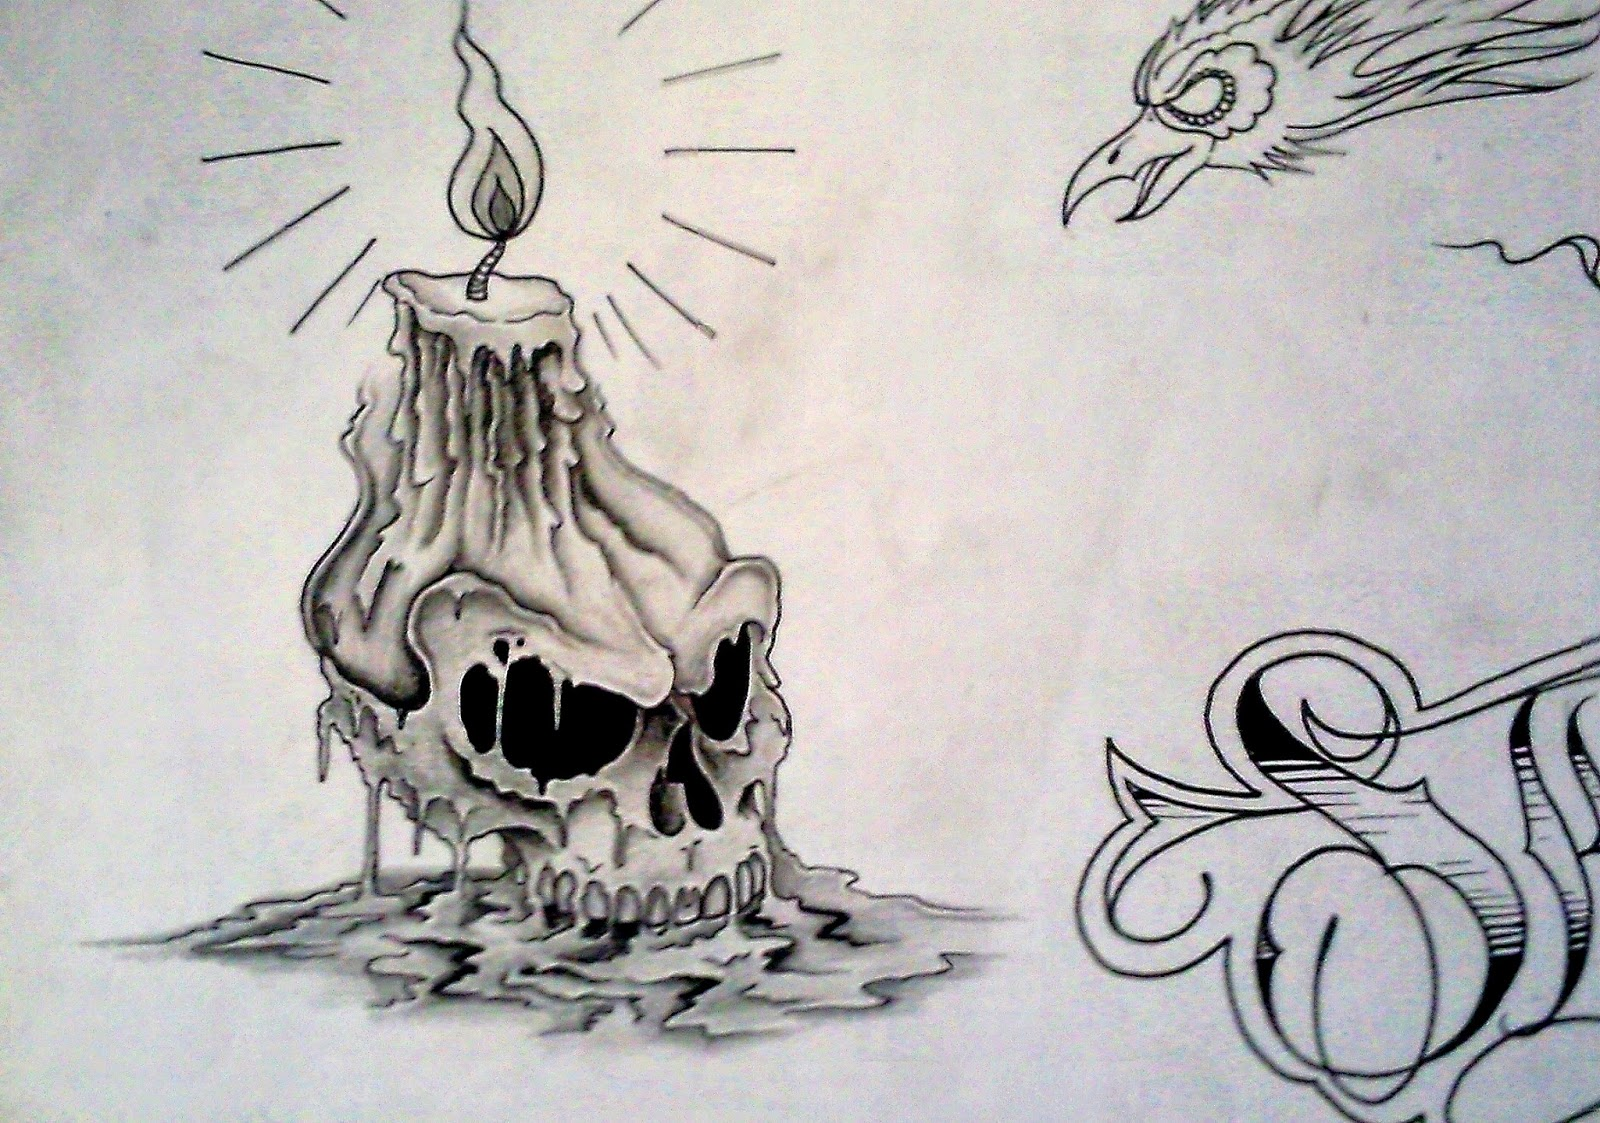 Drawn skull candle Photos All  to Skull